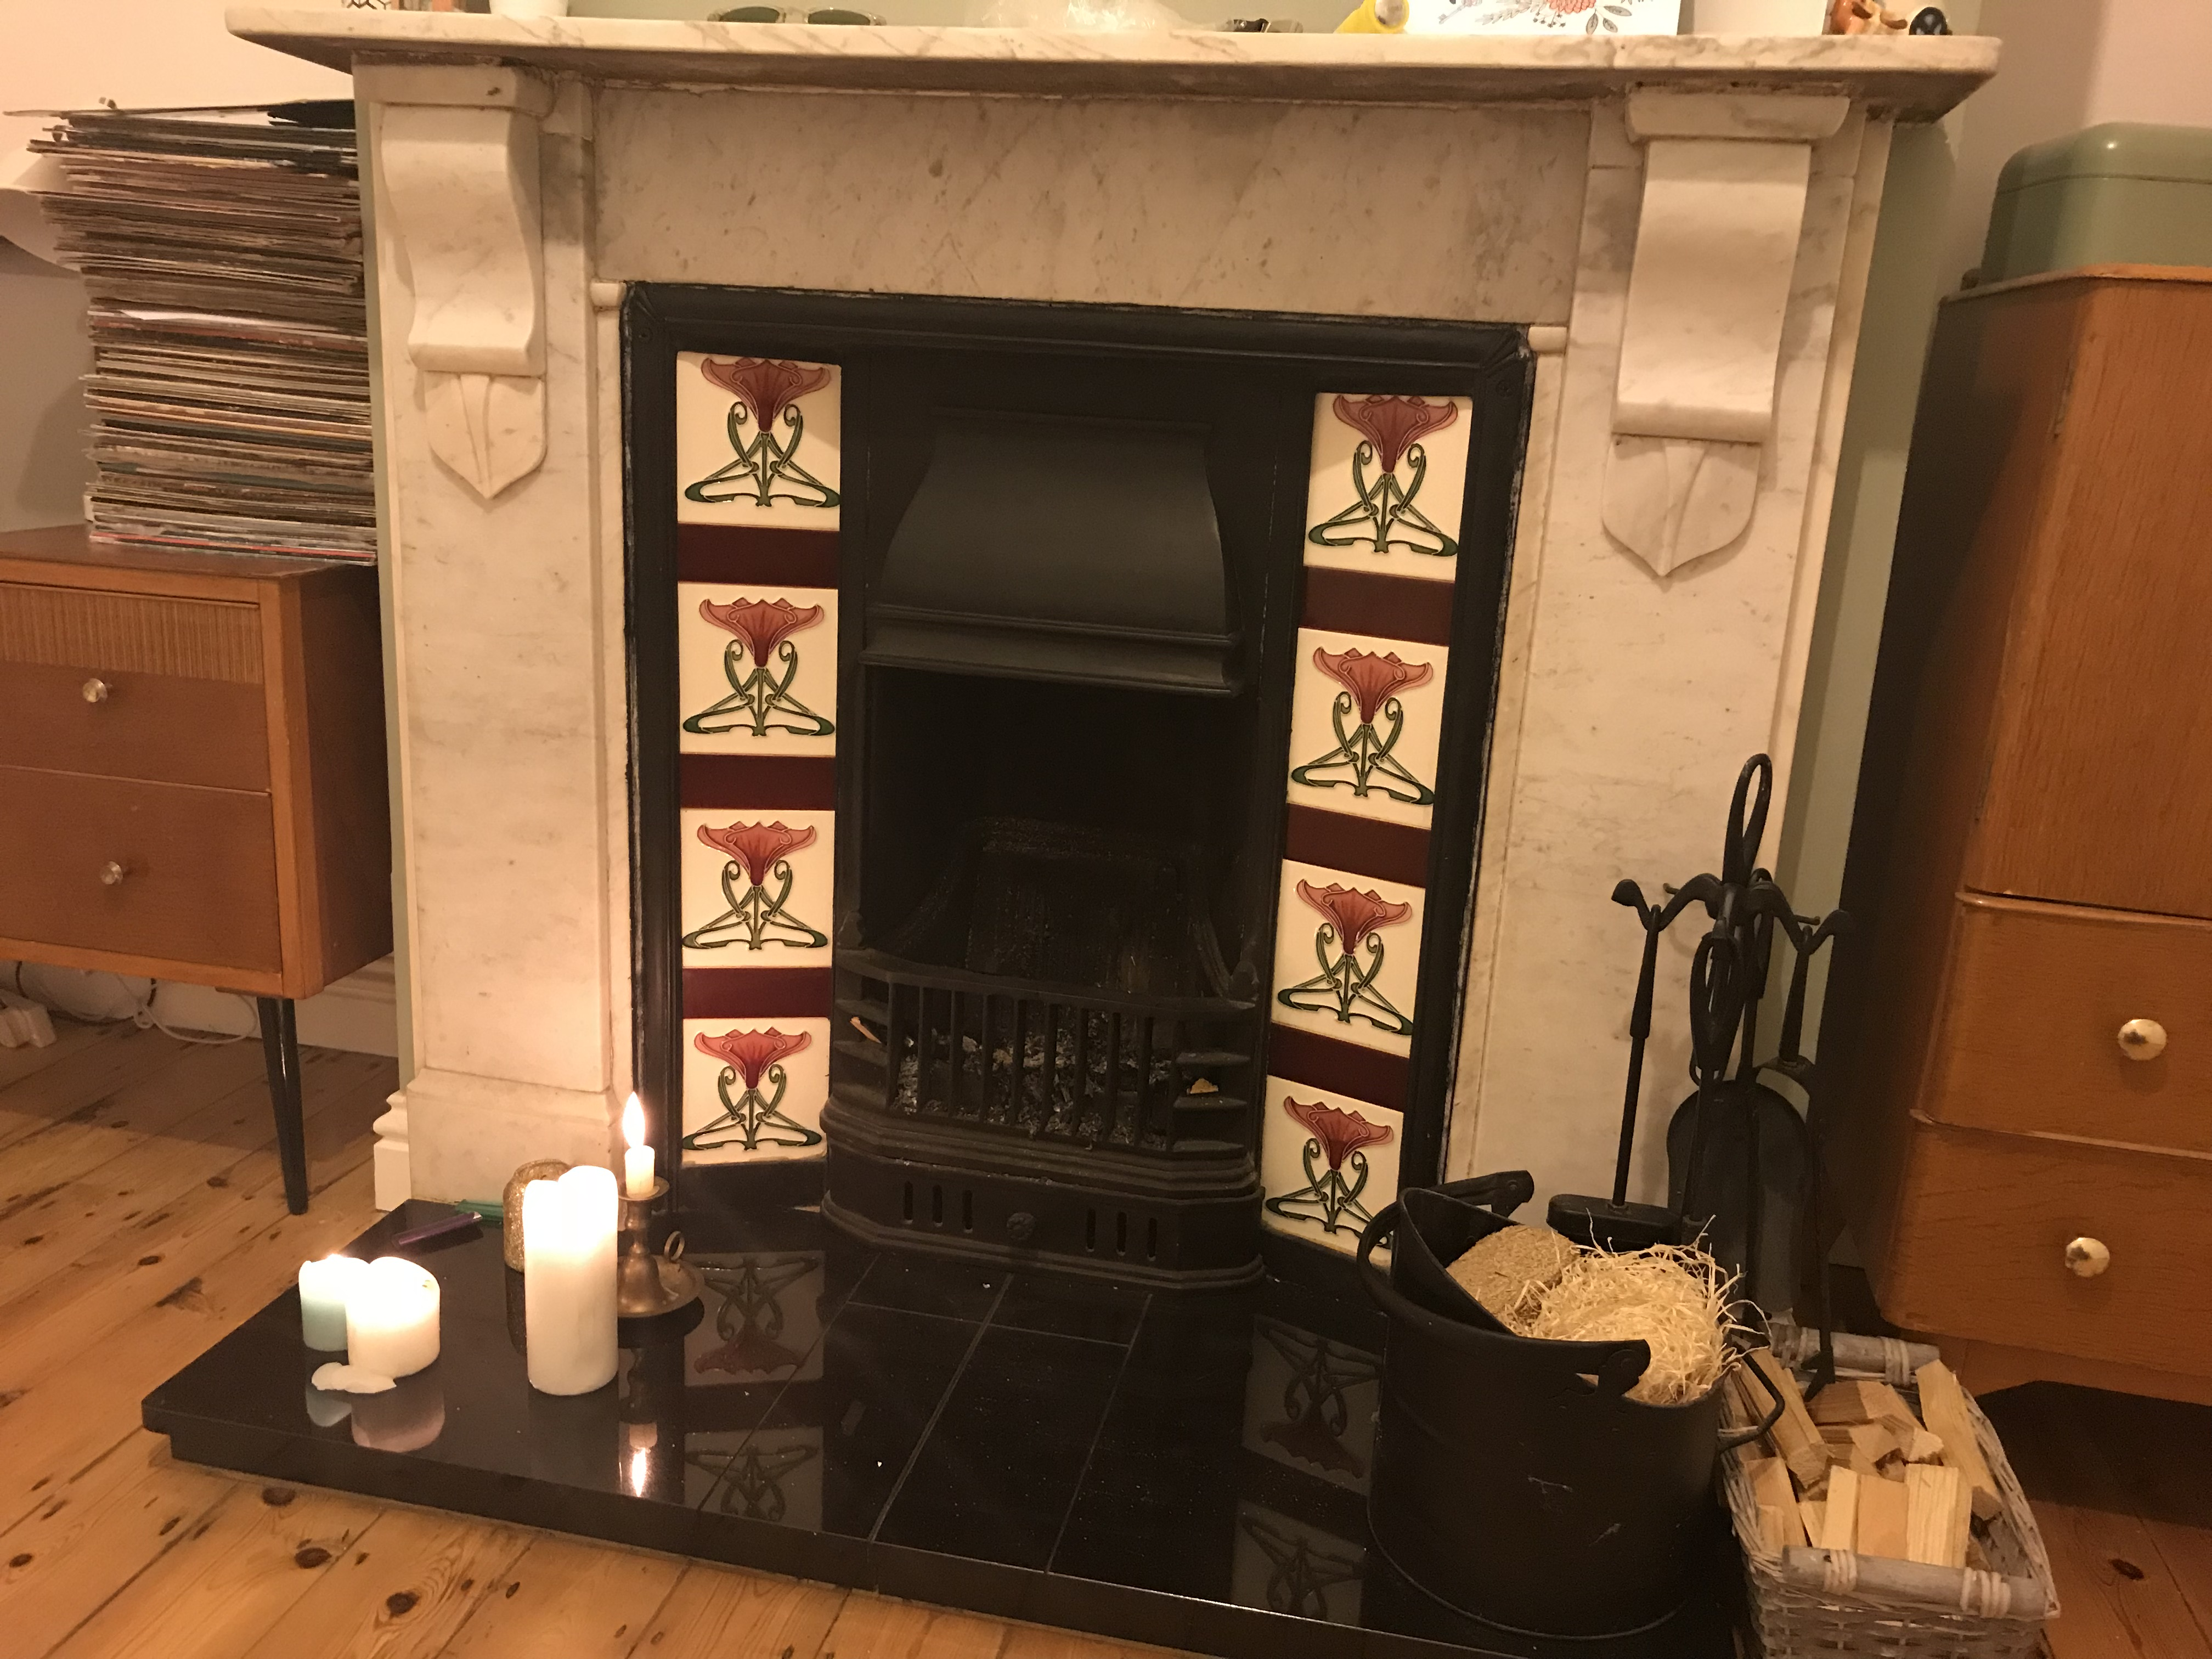 howofireplaceiles decorative return your fireplaces gallery and warm tile tiles on antique walls to accentfireplace imagesfireplace wall floor fireplace mosaic porcelain fireplaceile designs ideas inspiration with photo images